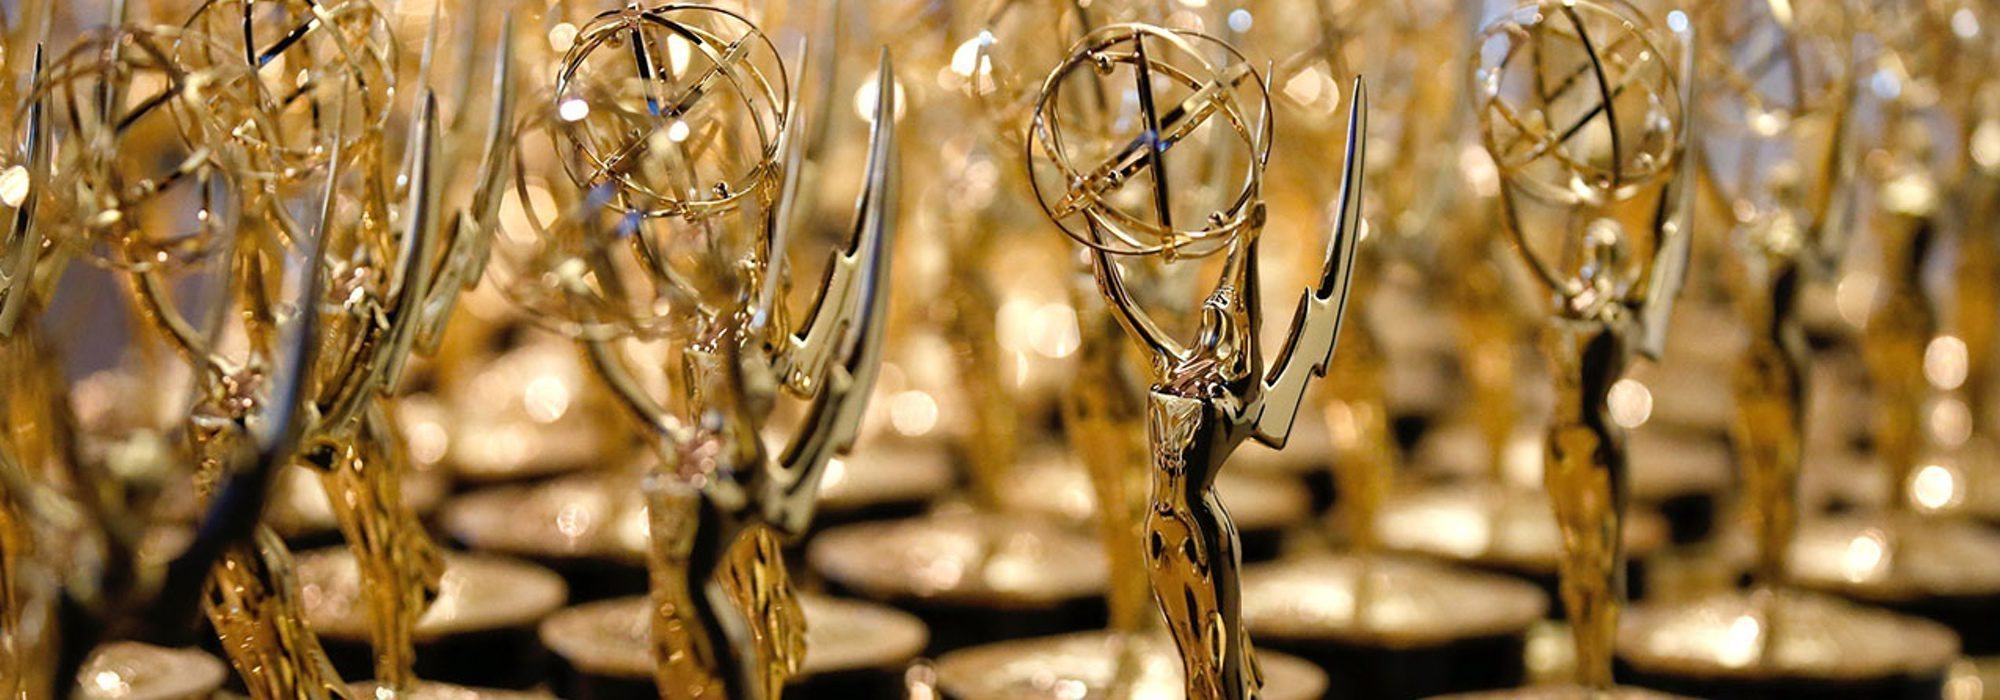 71th Primetime Emmy Awards